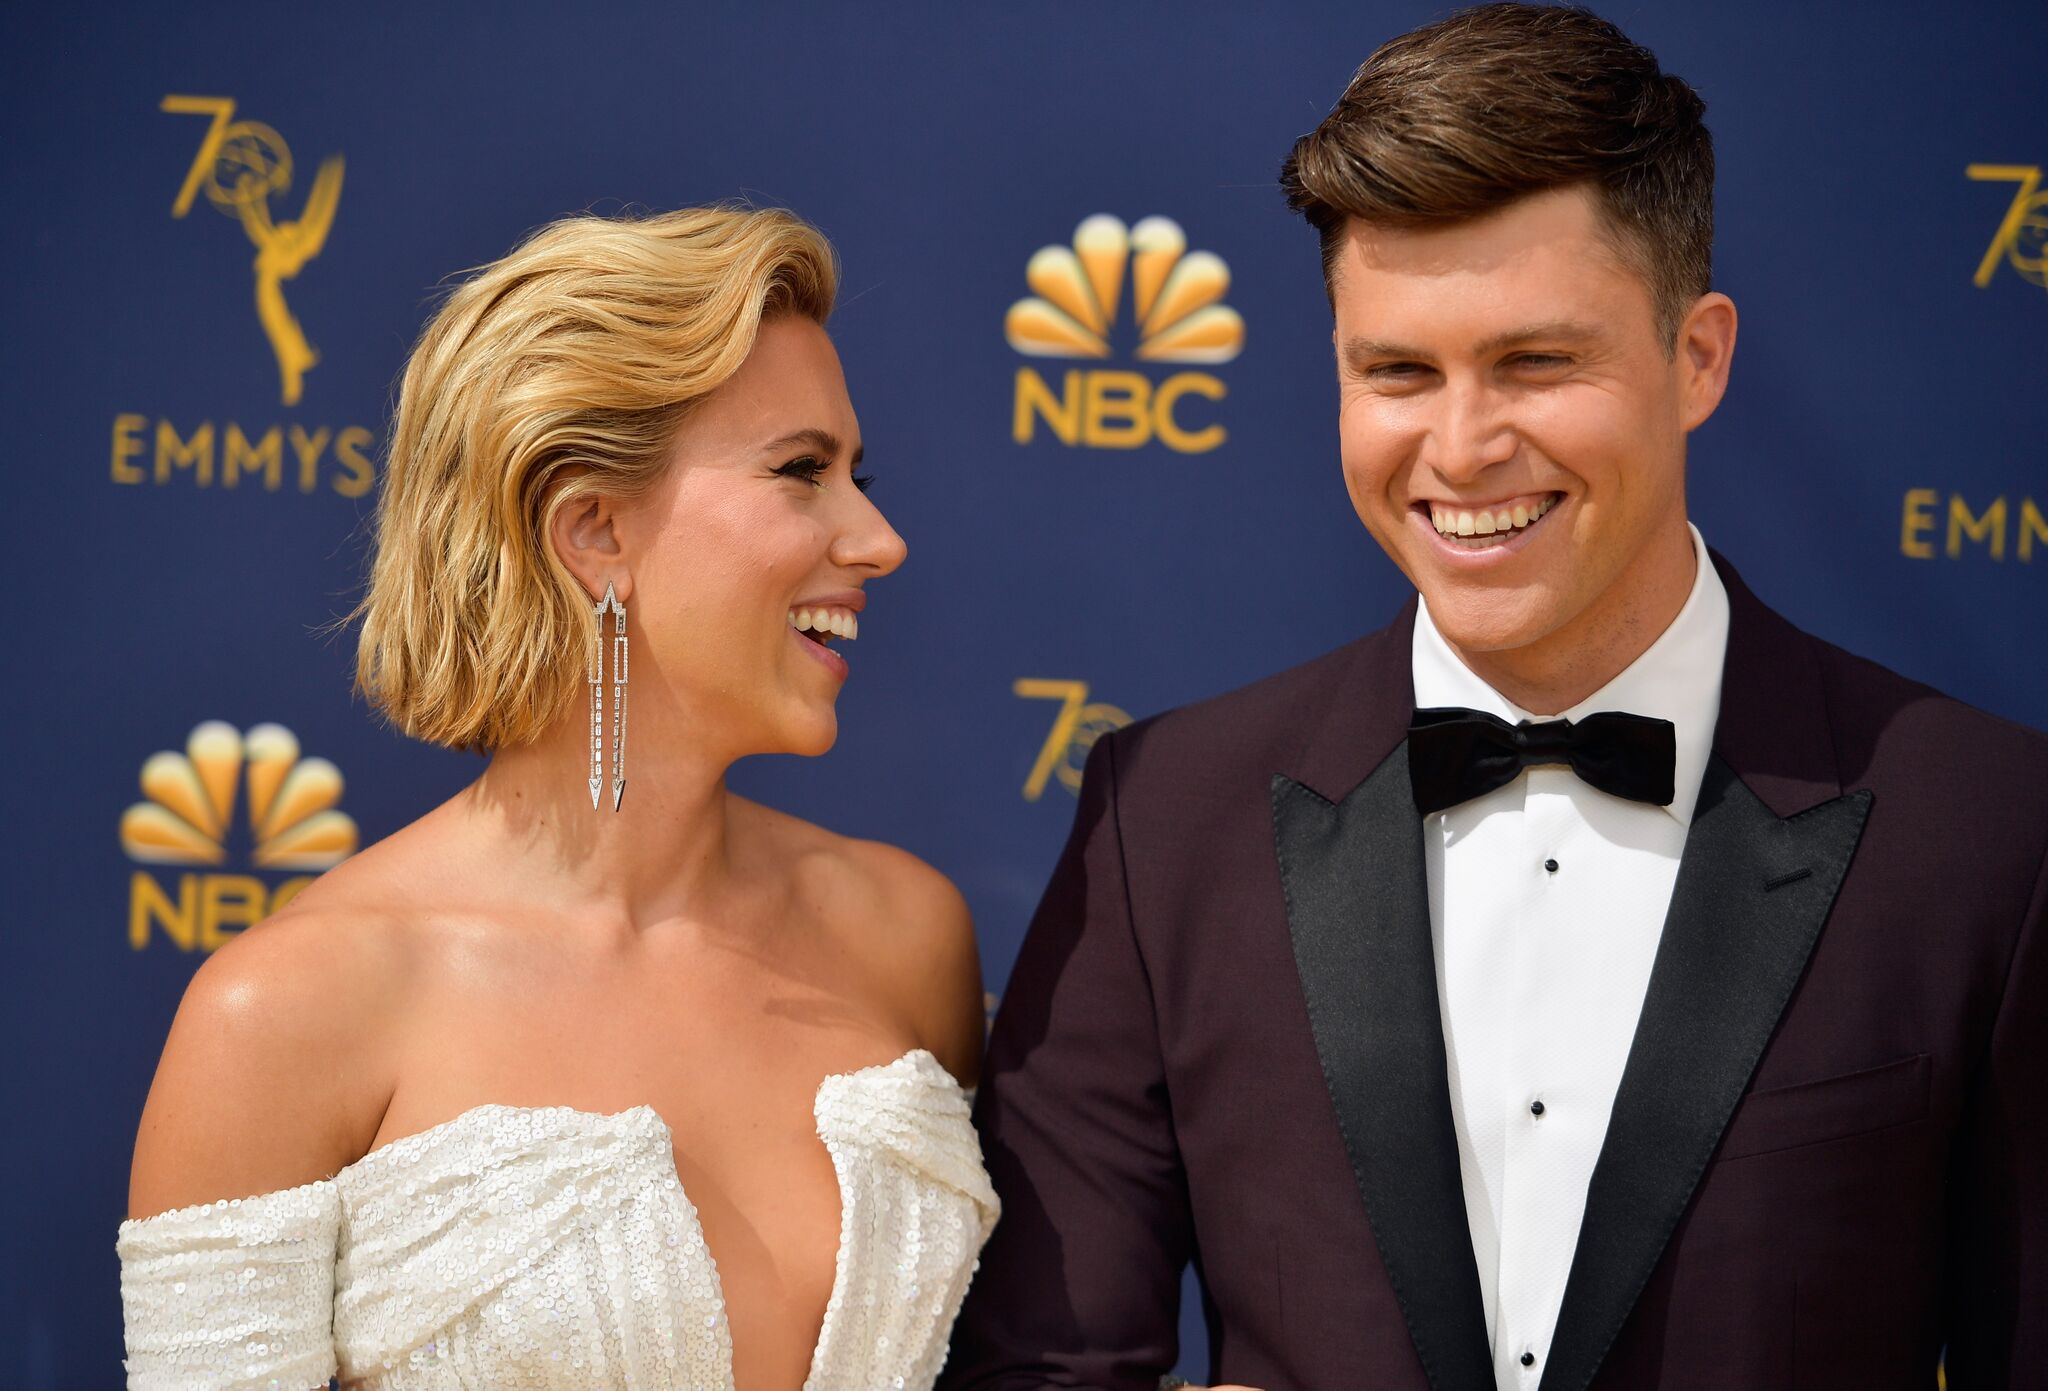 Scarlett Johansson and SNL's Colin Jost are engaged | Getty Images